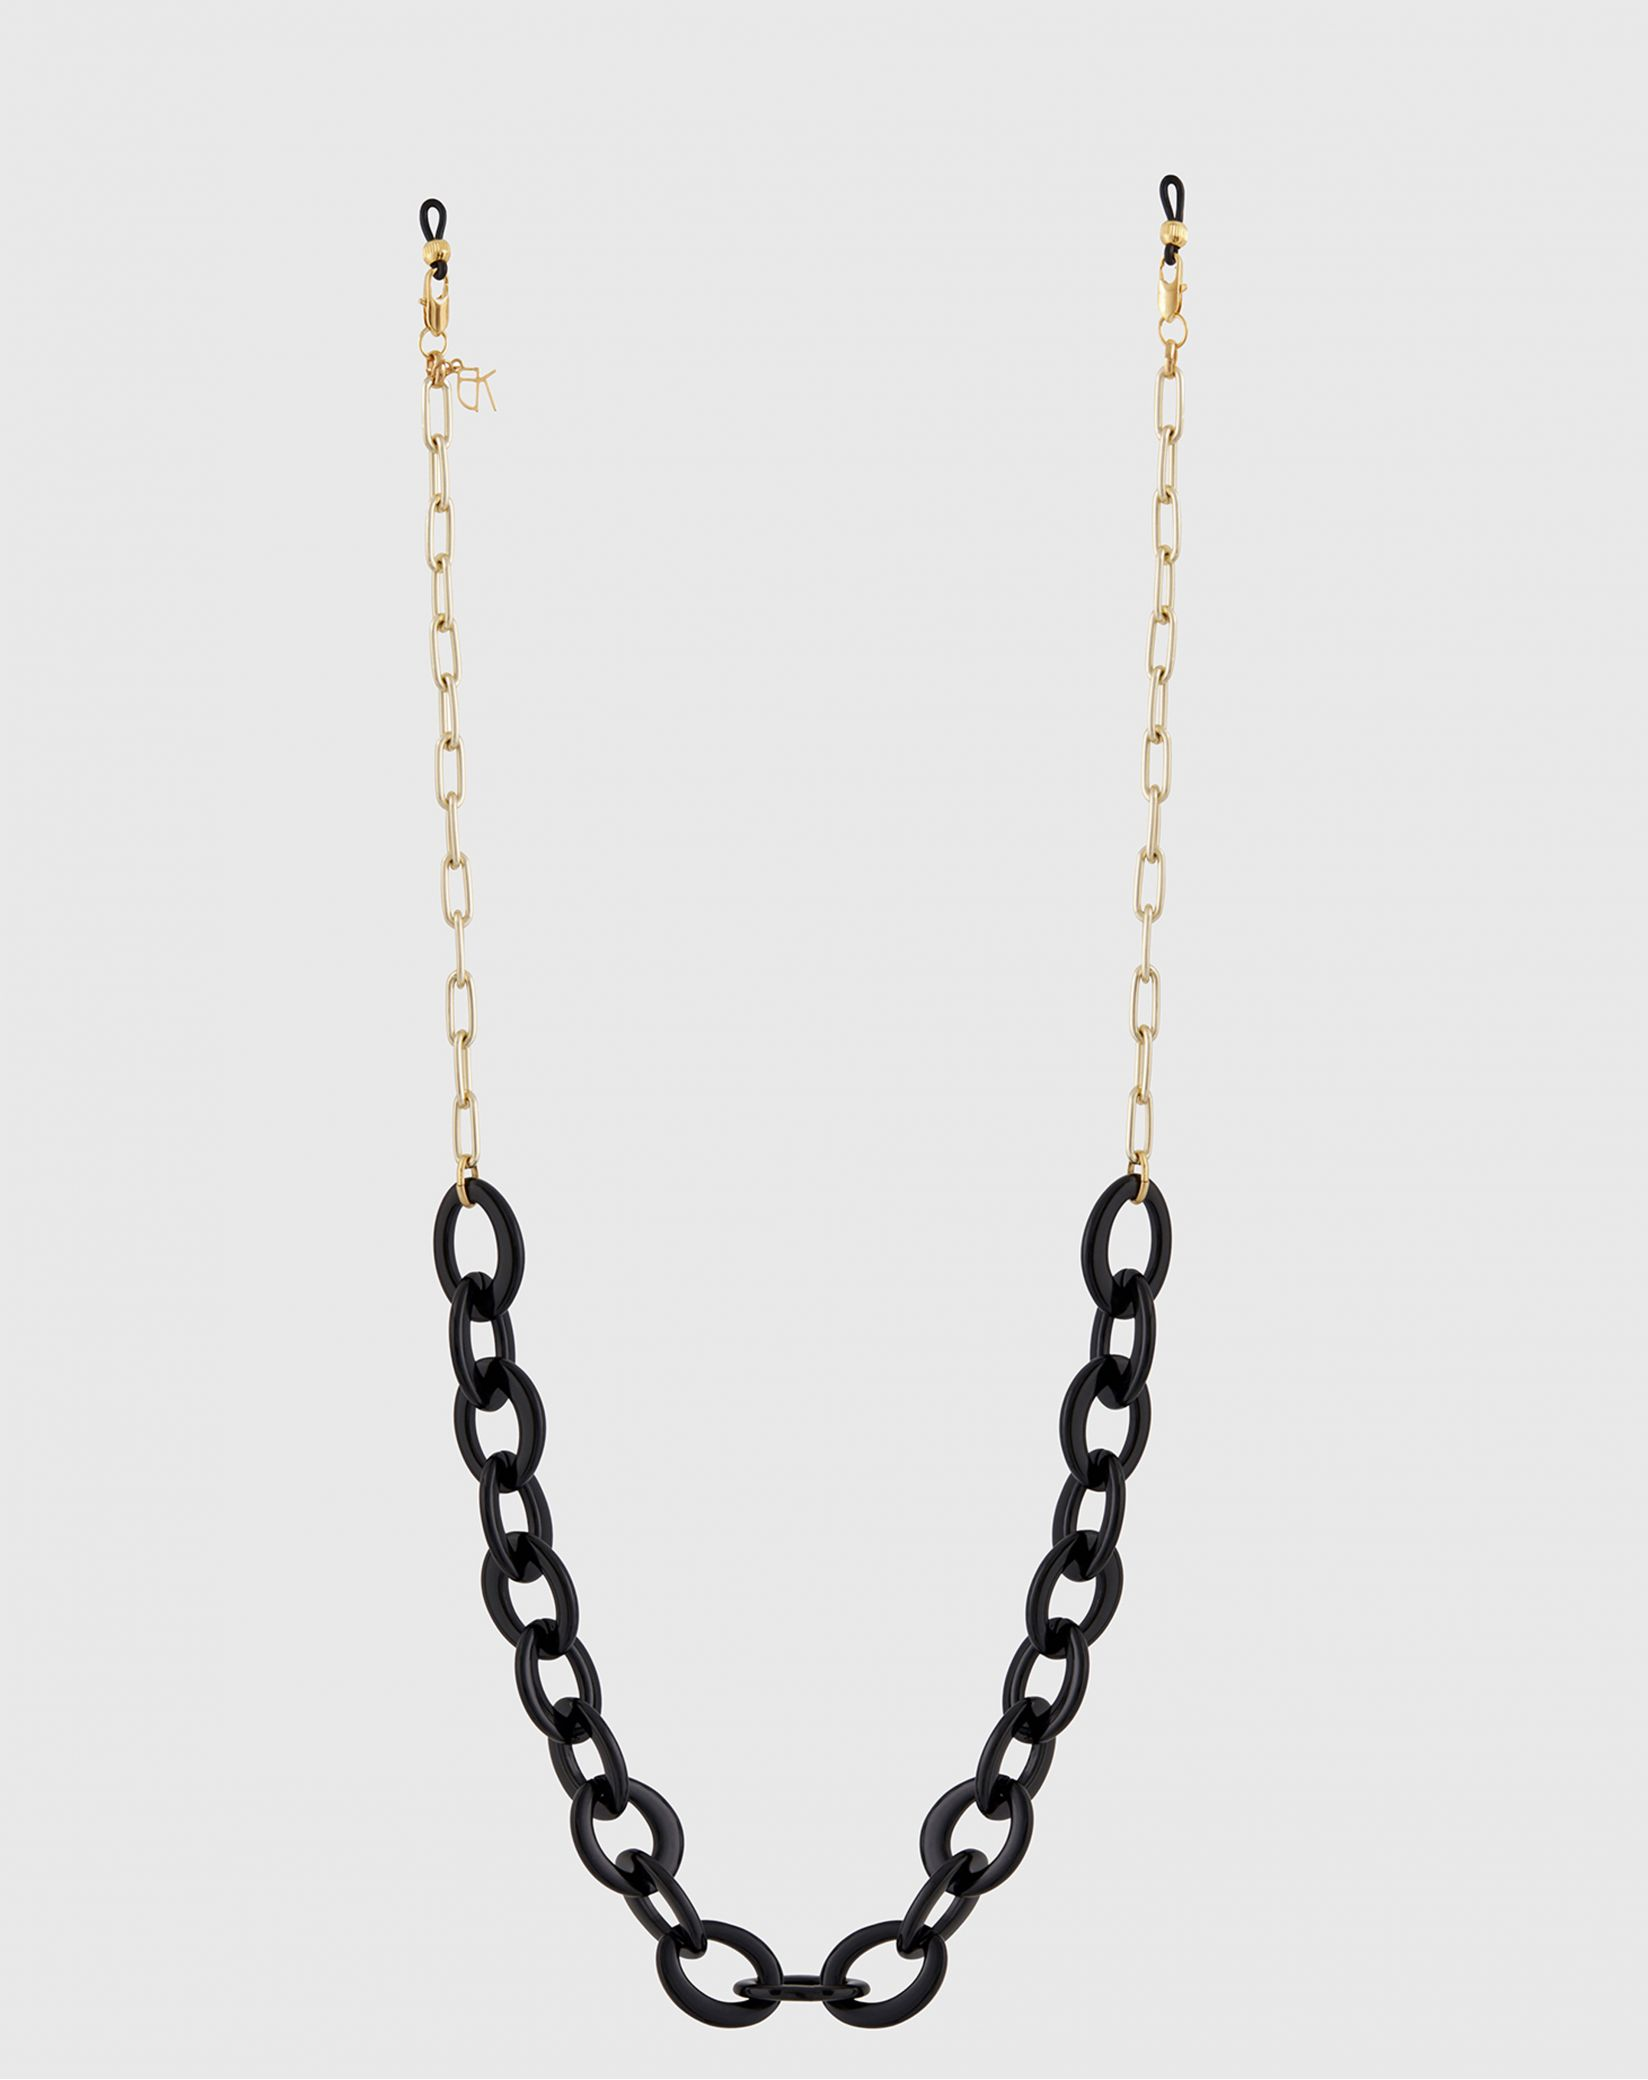 Eyewear chains in acrylic and metal